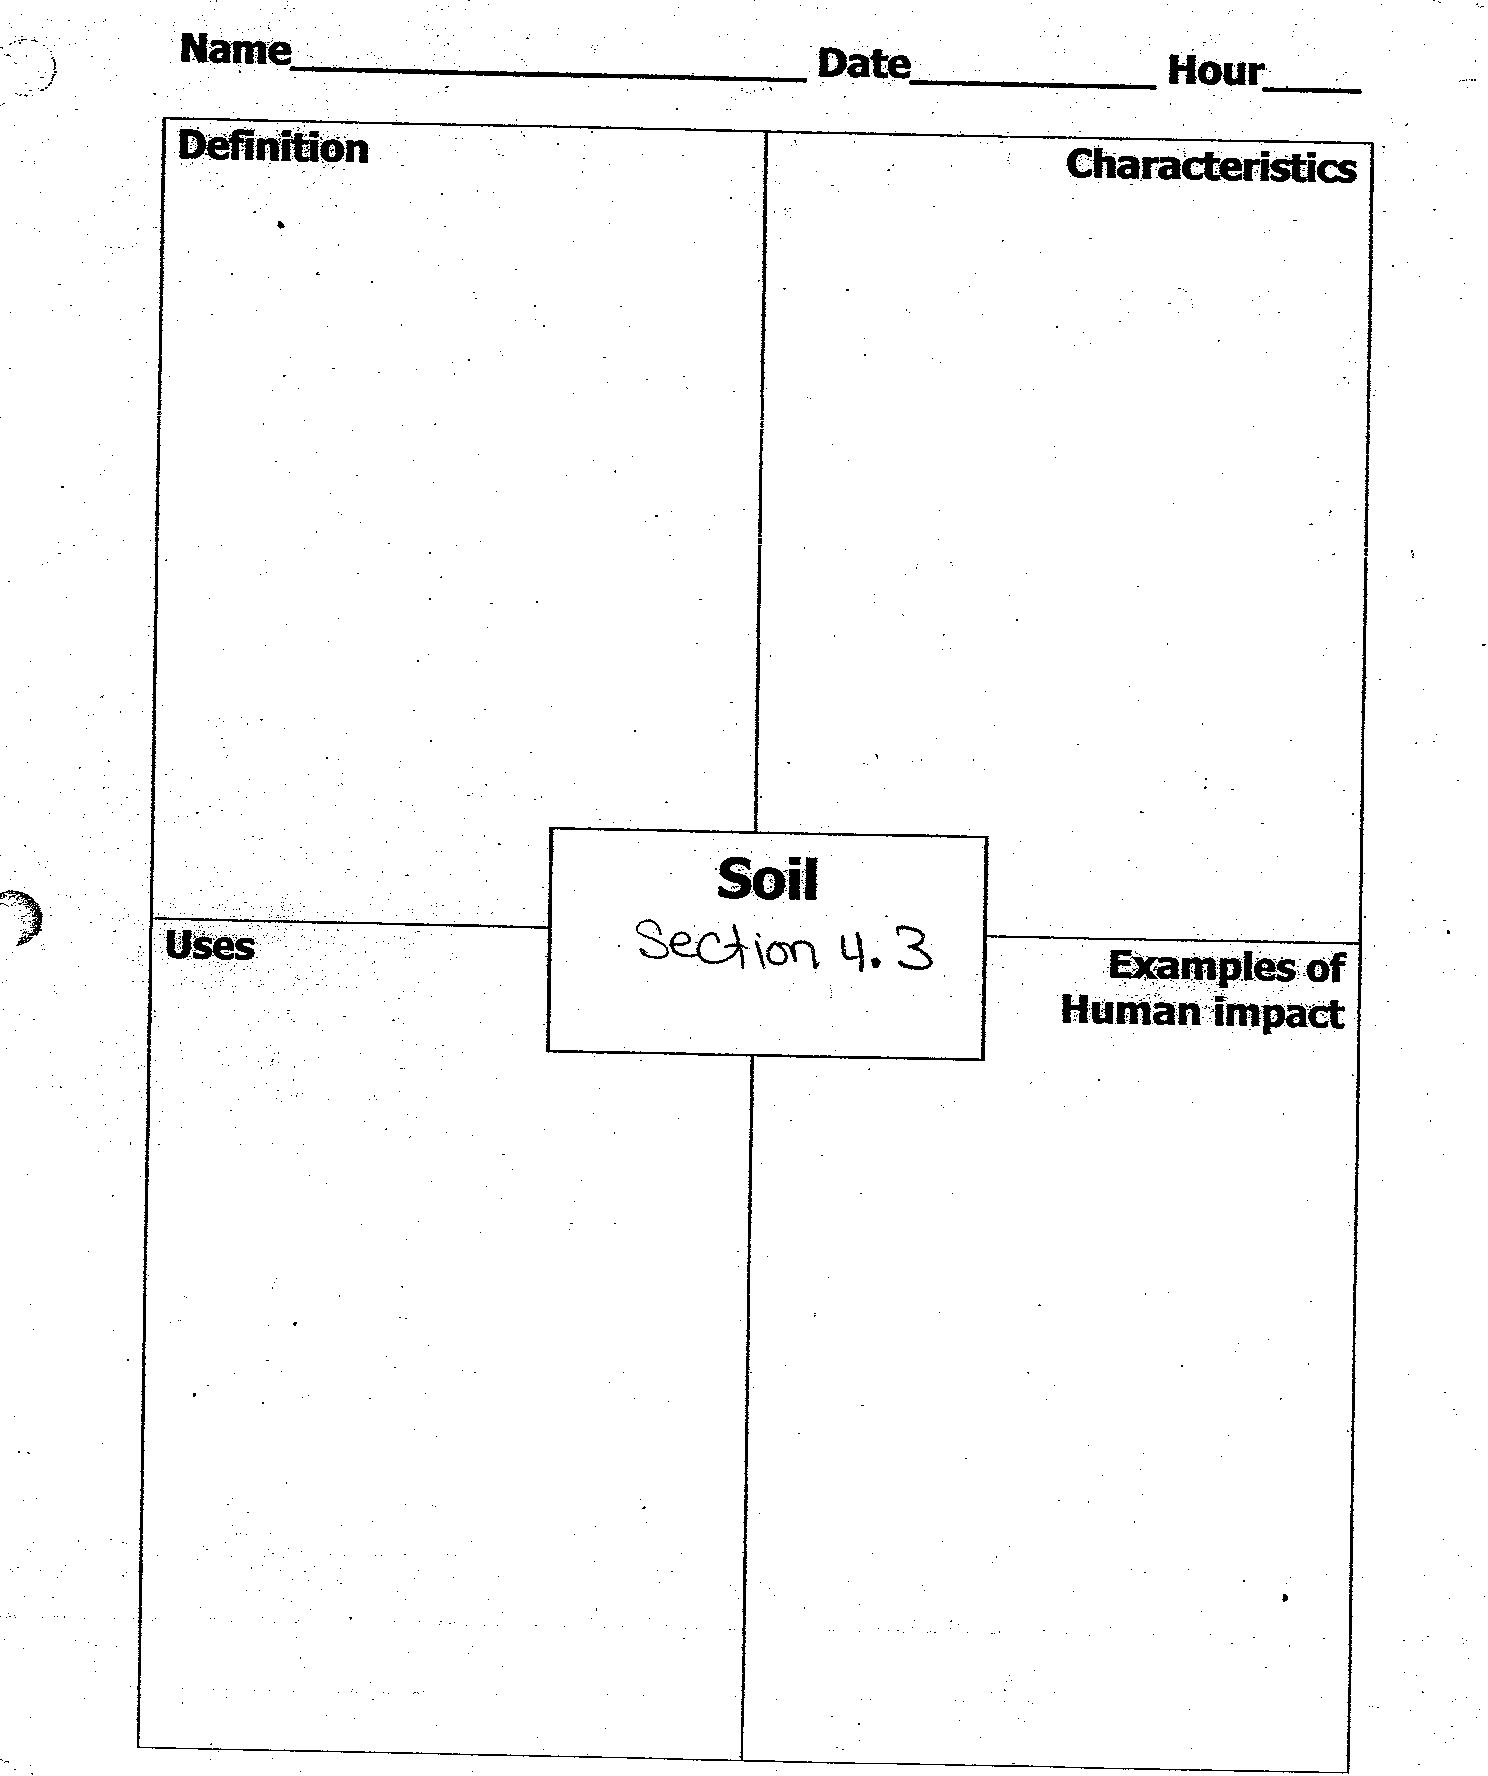 Glaciers Soil Worksheet